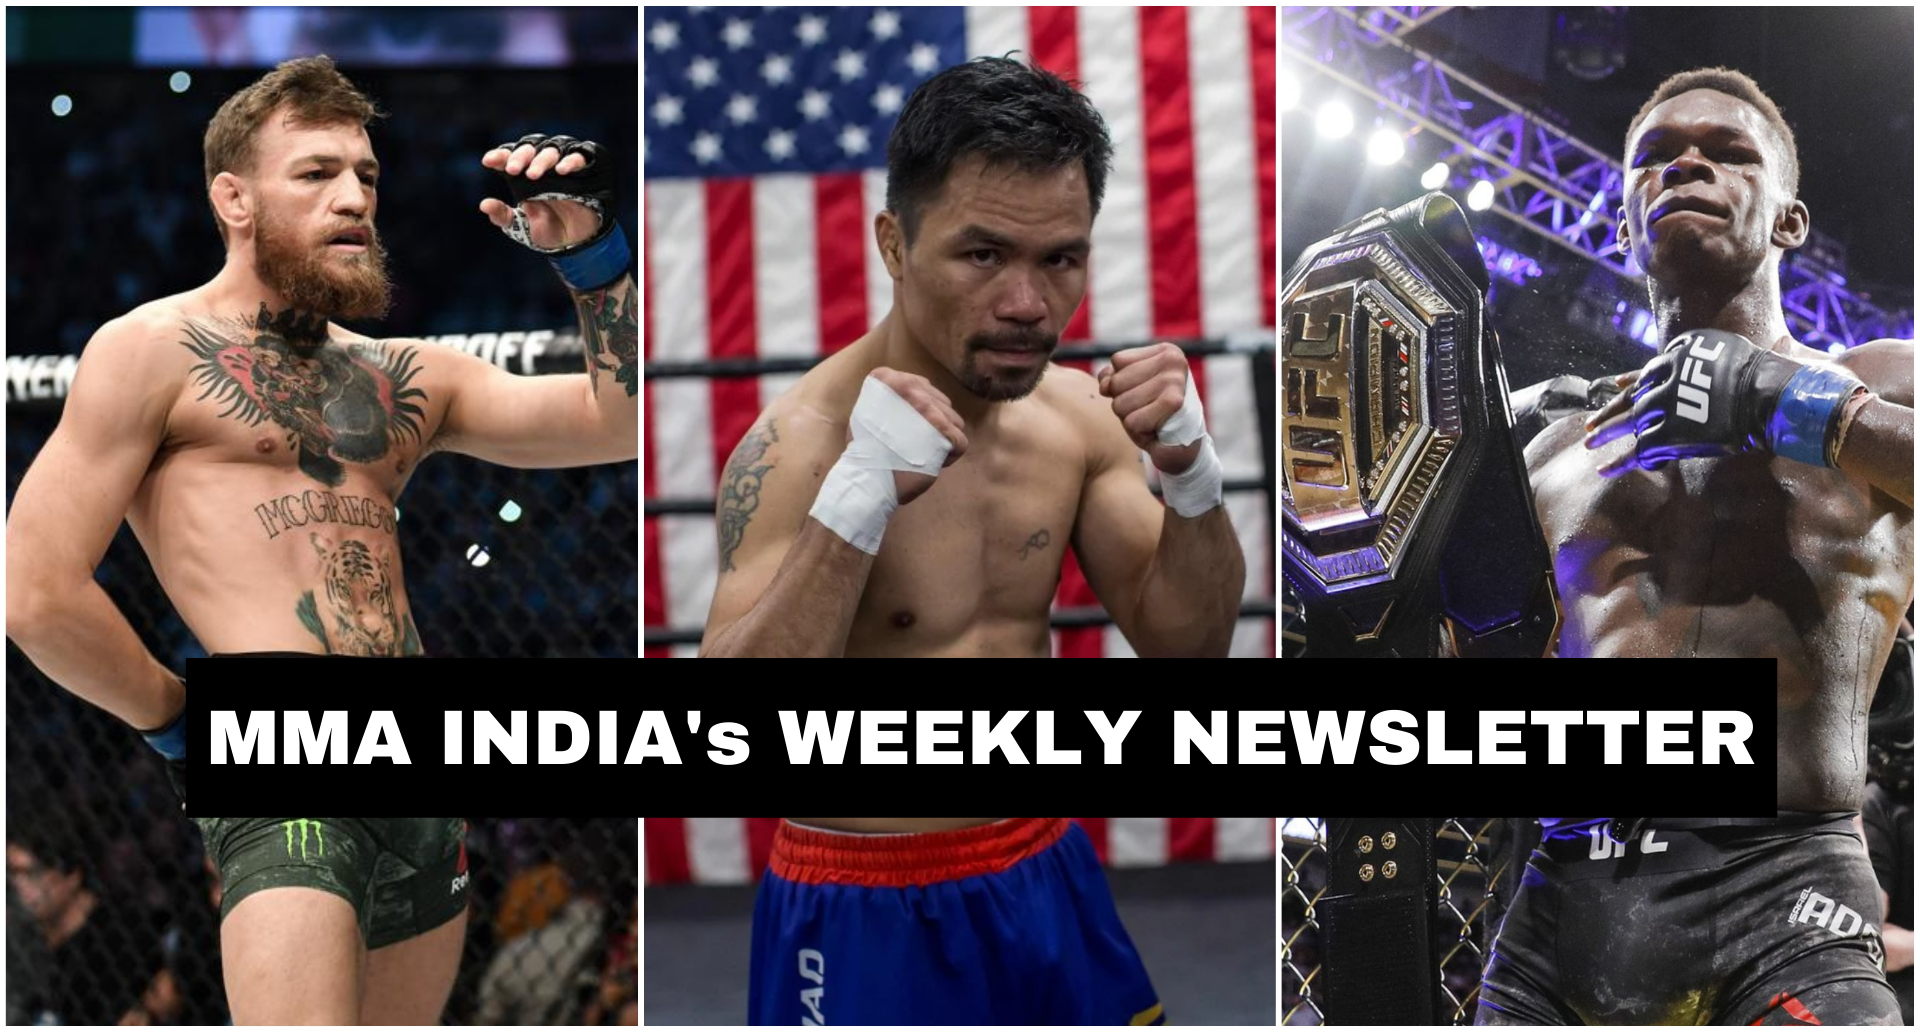 MMA India's Weekly Roundup (22-28 September): McGregor vs Pacquiao in works, Adesanya defends his title against Costa - McGregor